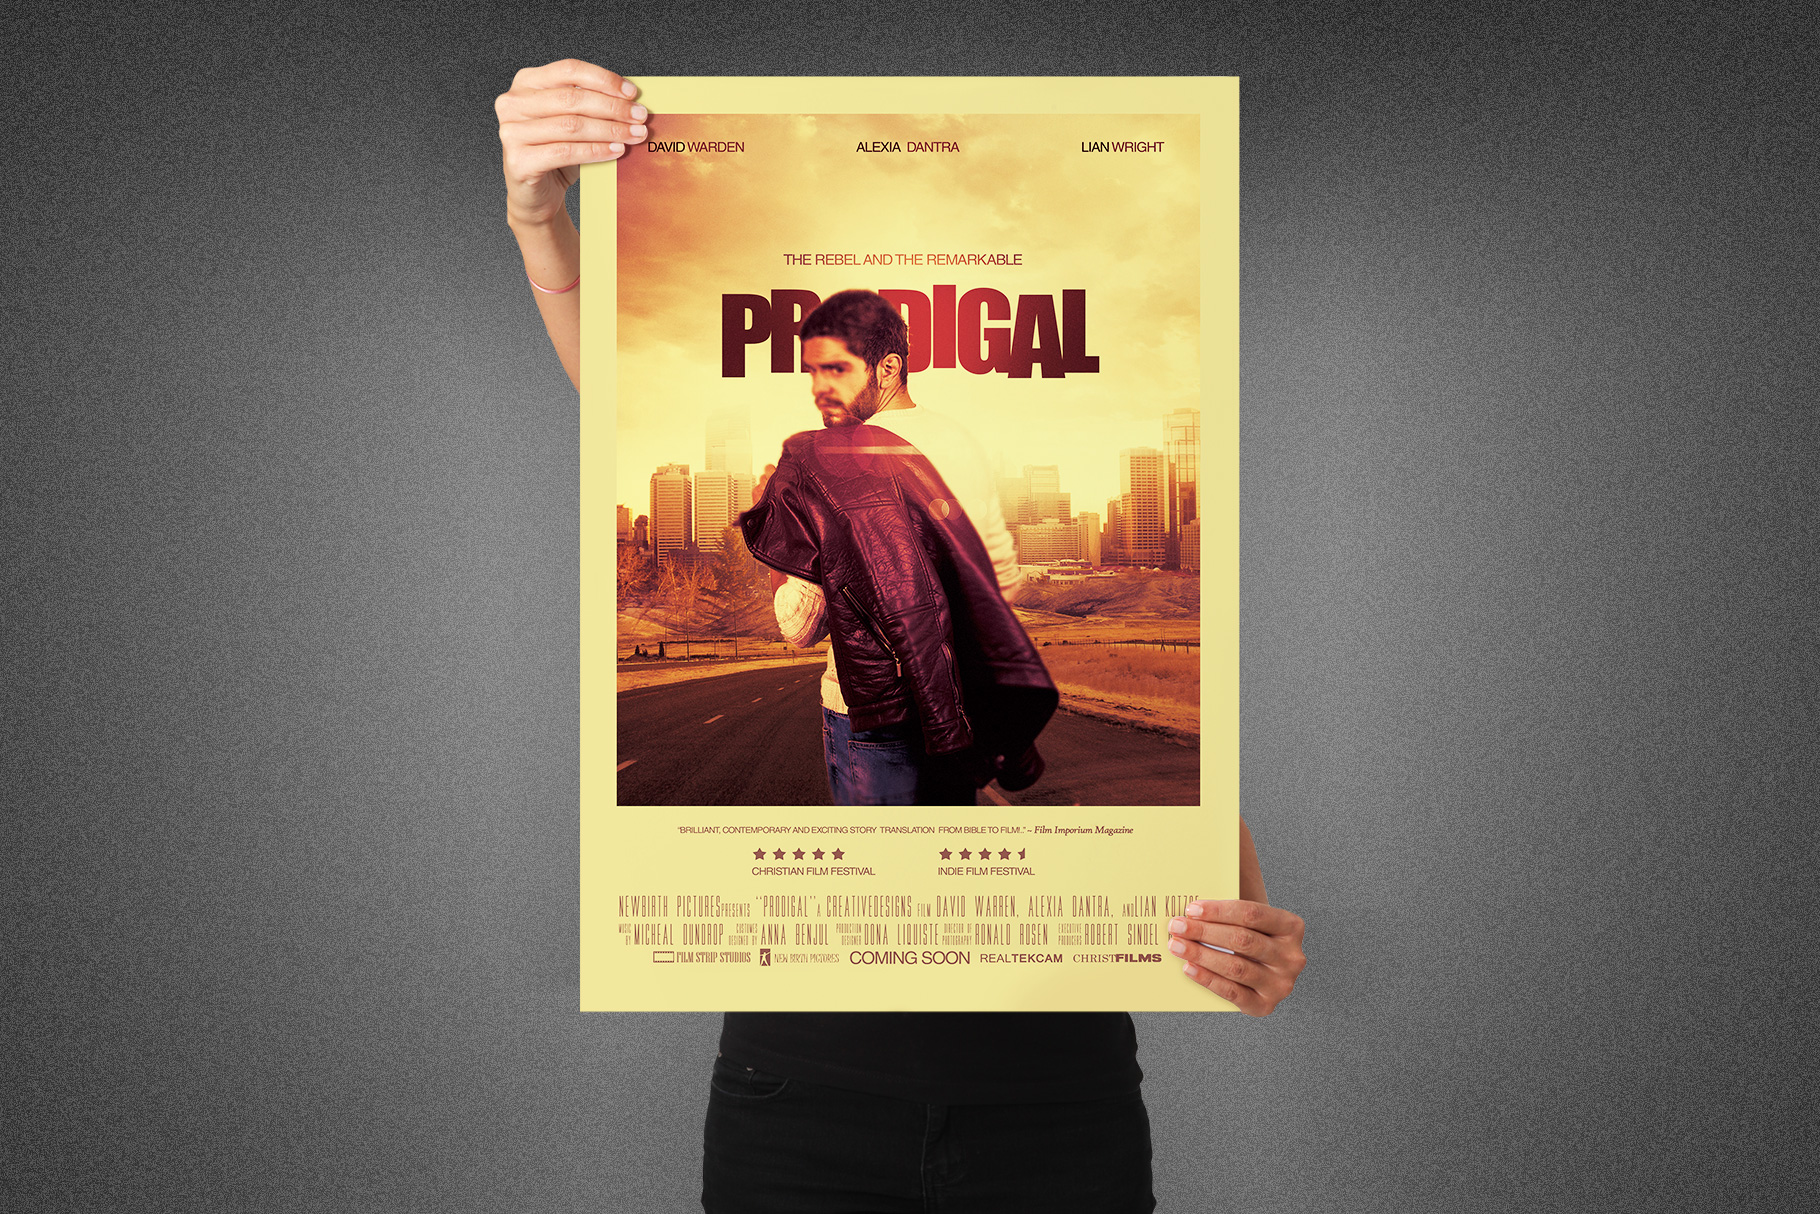 Prodigal Movie Poster Template example image 6